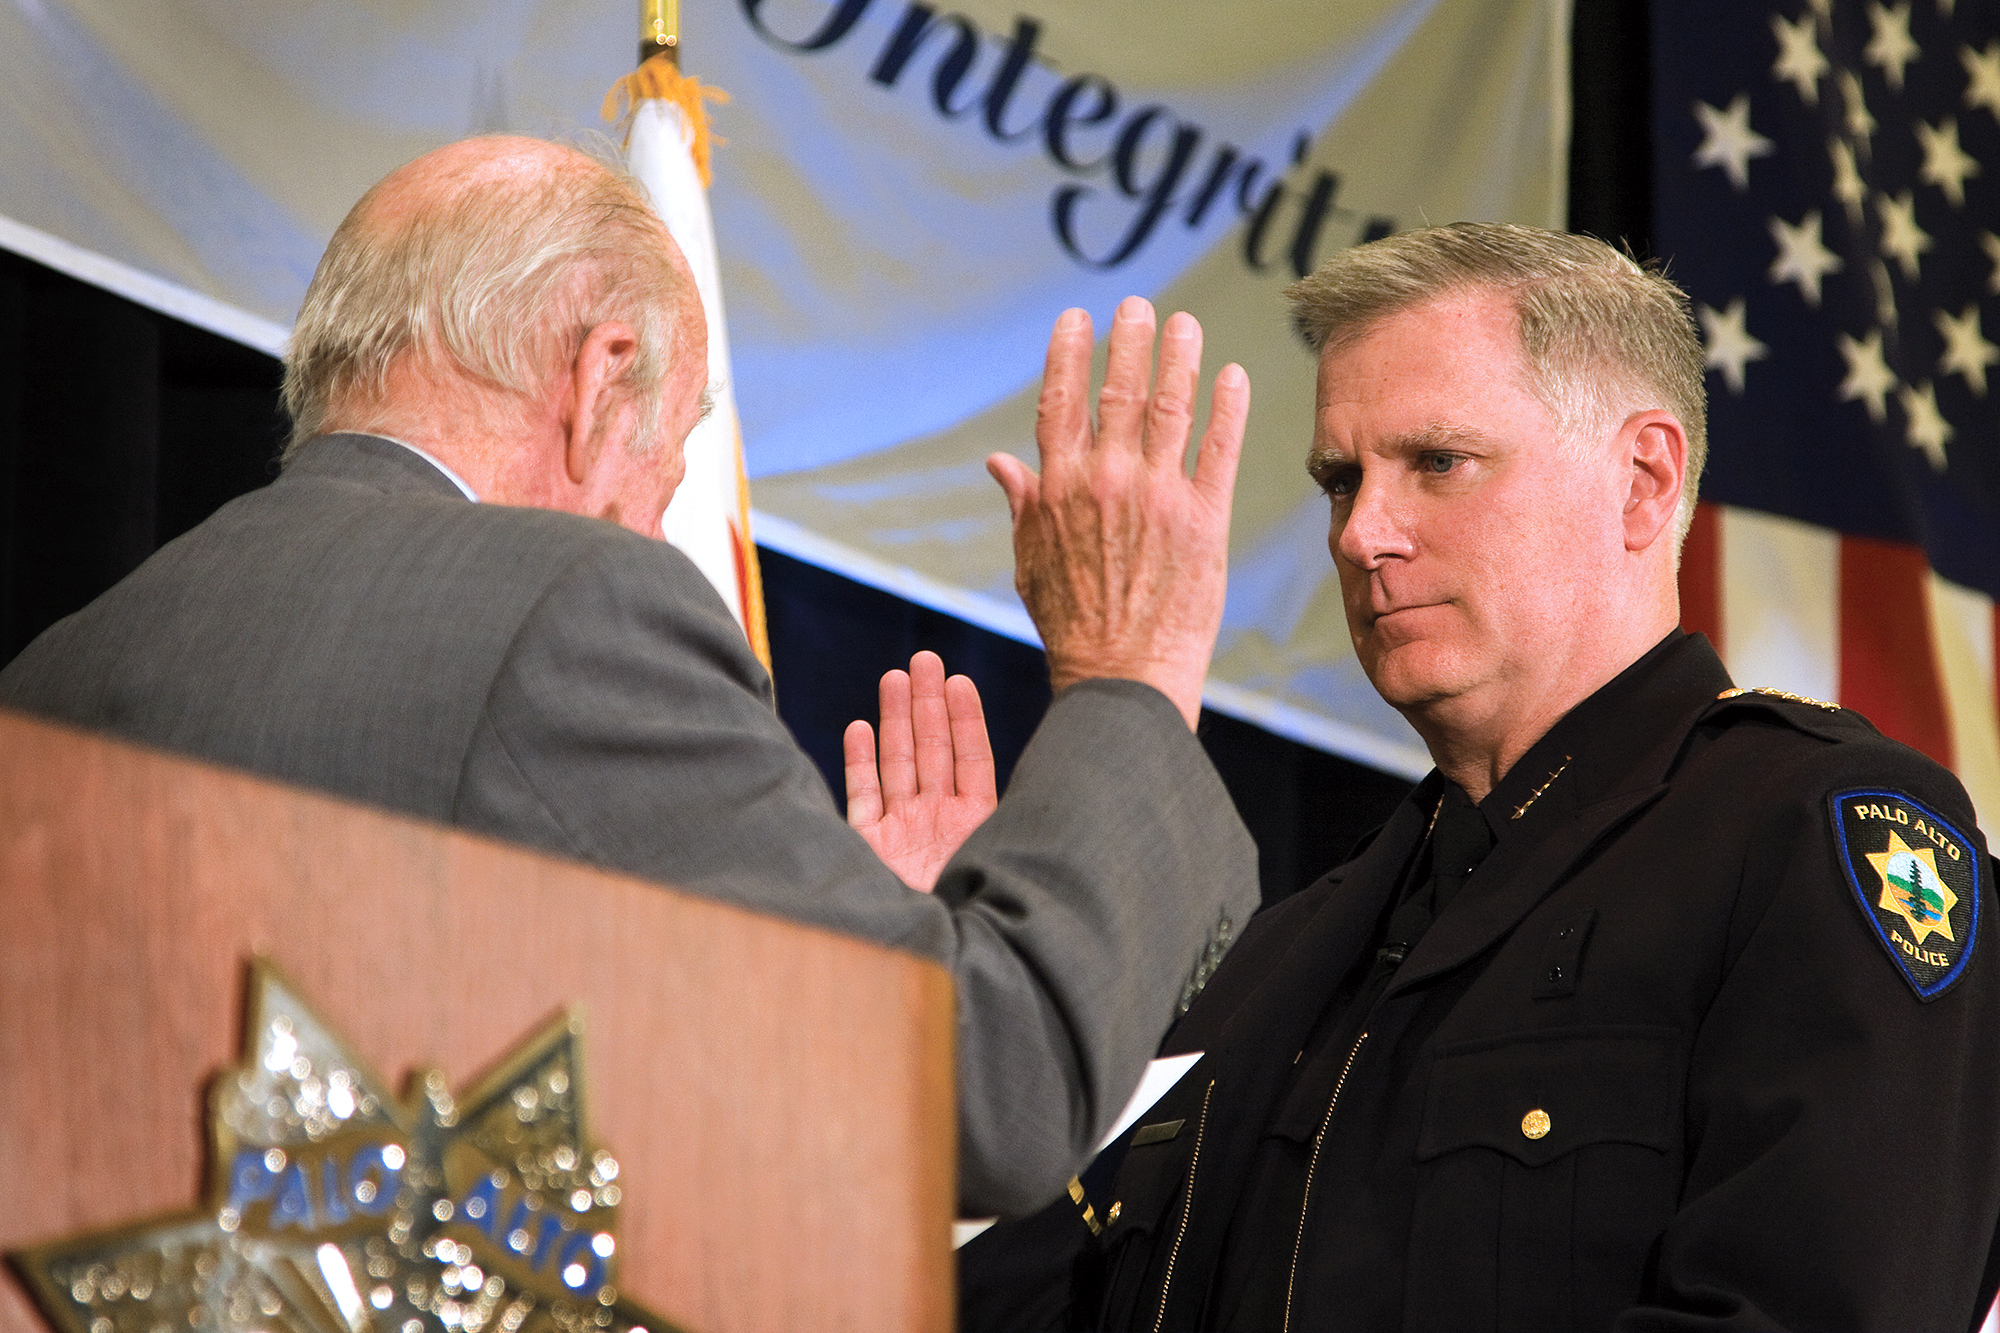 Dennis Burns, right,is sworn in as Palo Alto's new Police Chief by former Secretary of State George Shultz onNov.30, 2009.  File photo/Palo Alto Weekly.